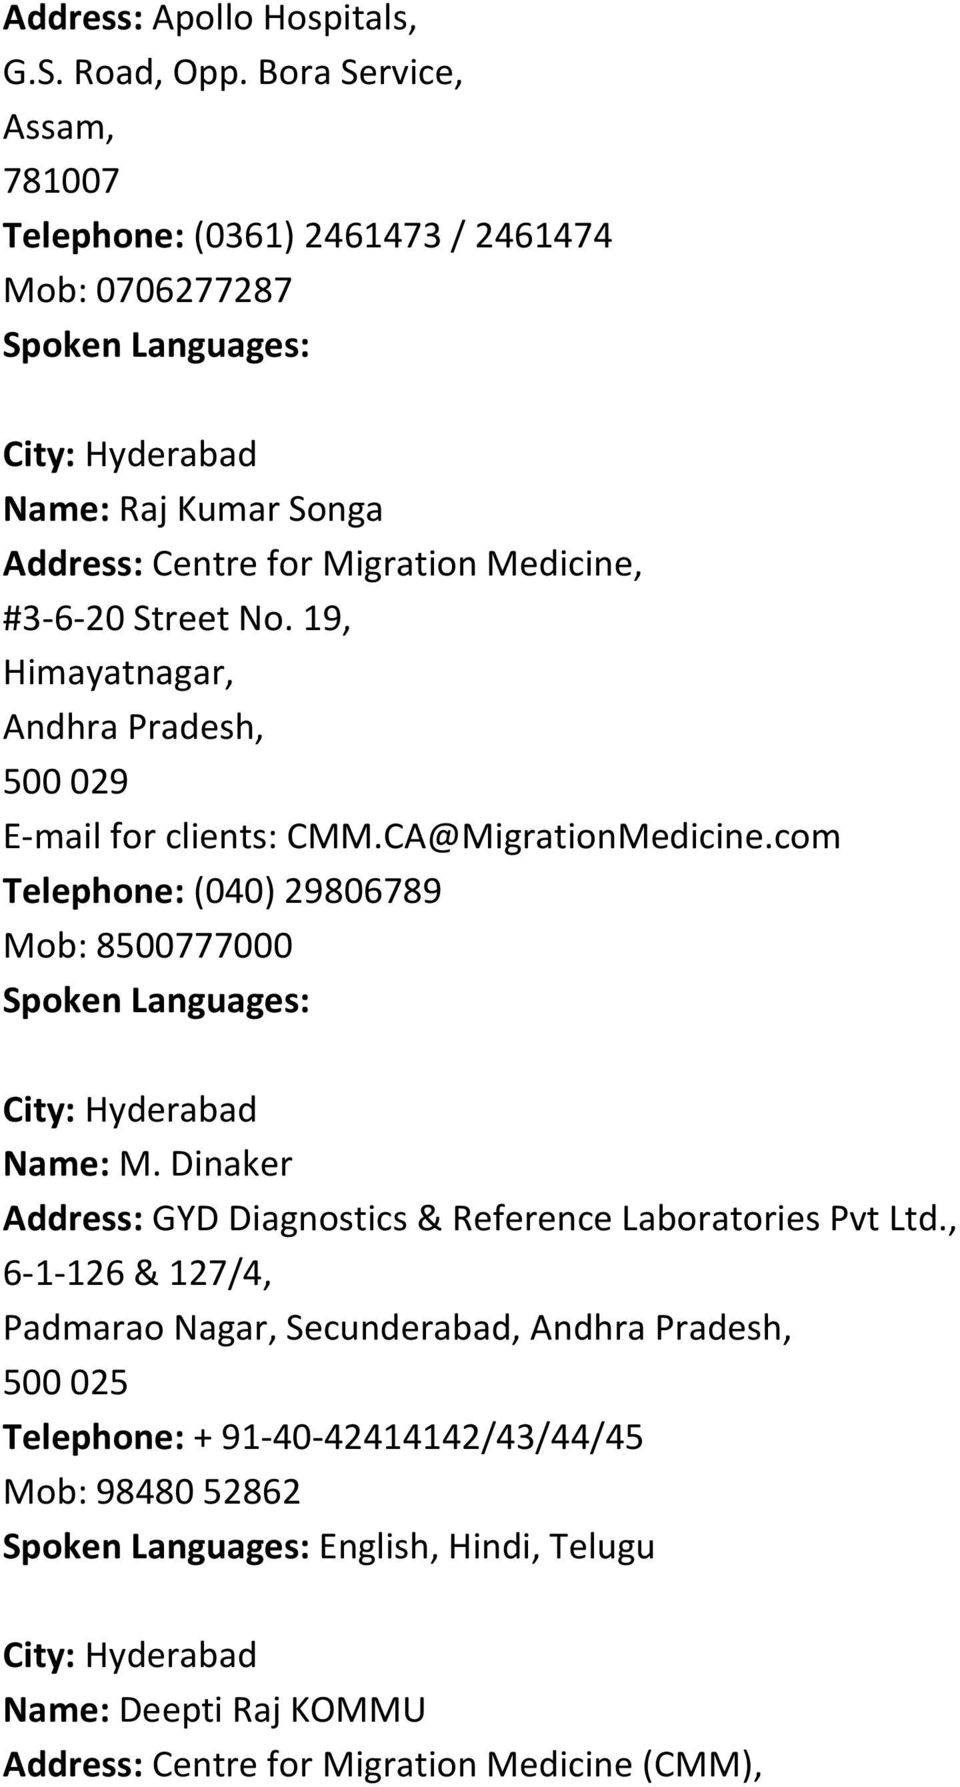 Street No. 19, Himayatnagar, Andhra Pradesh, 500 029 E-mail for clients: CMM.CA@MigrationMedicine.com Telephone: (040) 29806789 Mob: 8500777000 City: Hyderabad Name: M.